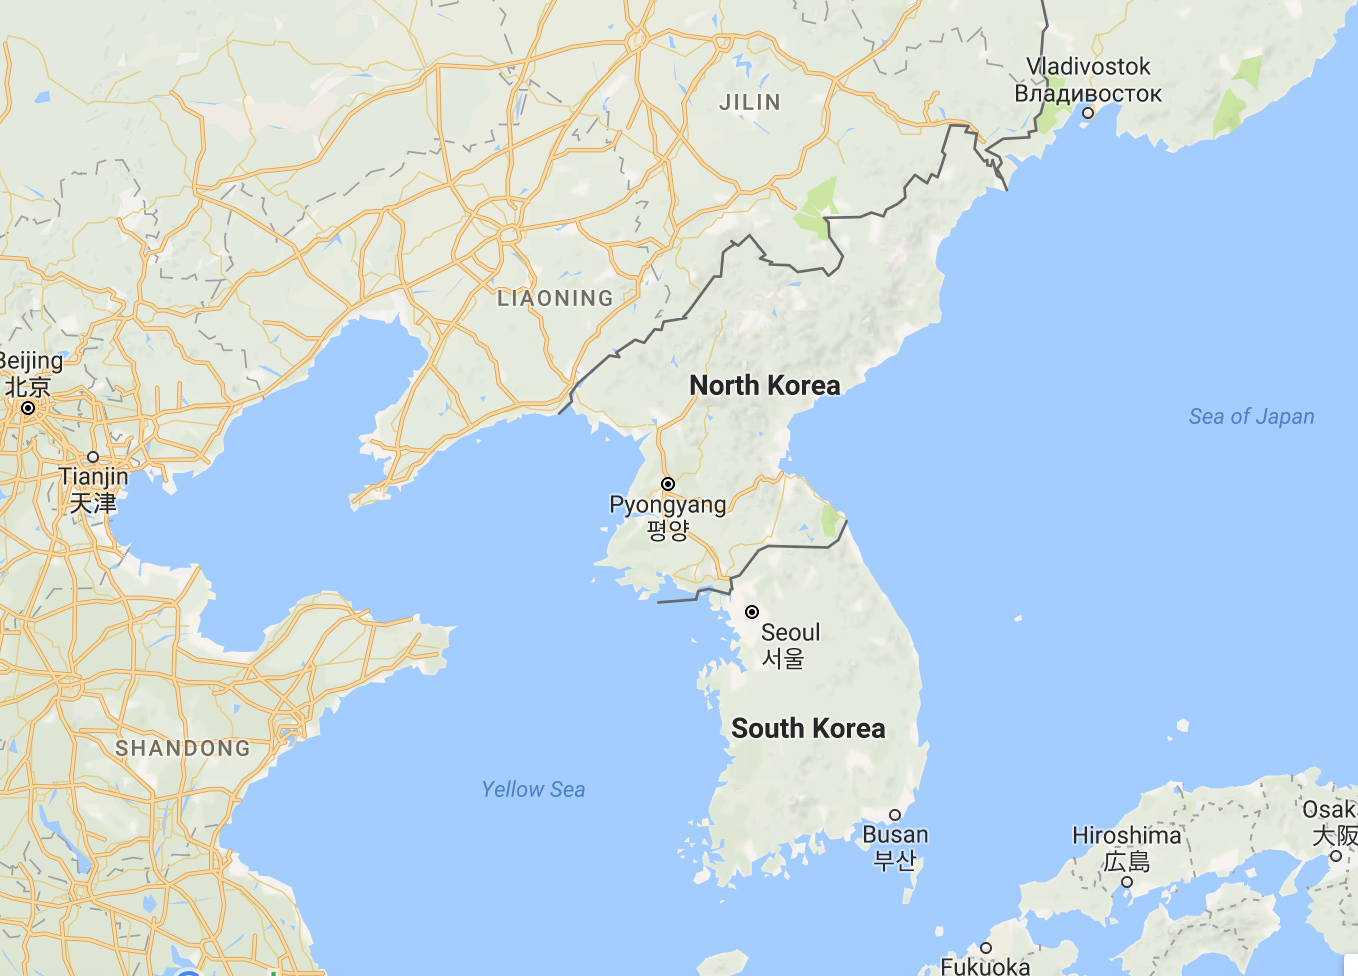 North Korea And The Dangers Of Nuclear War Towards The - North korea map of us targets